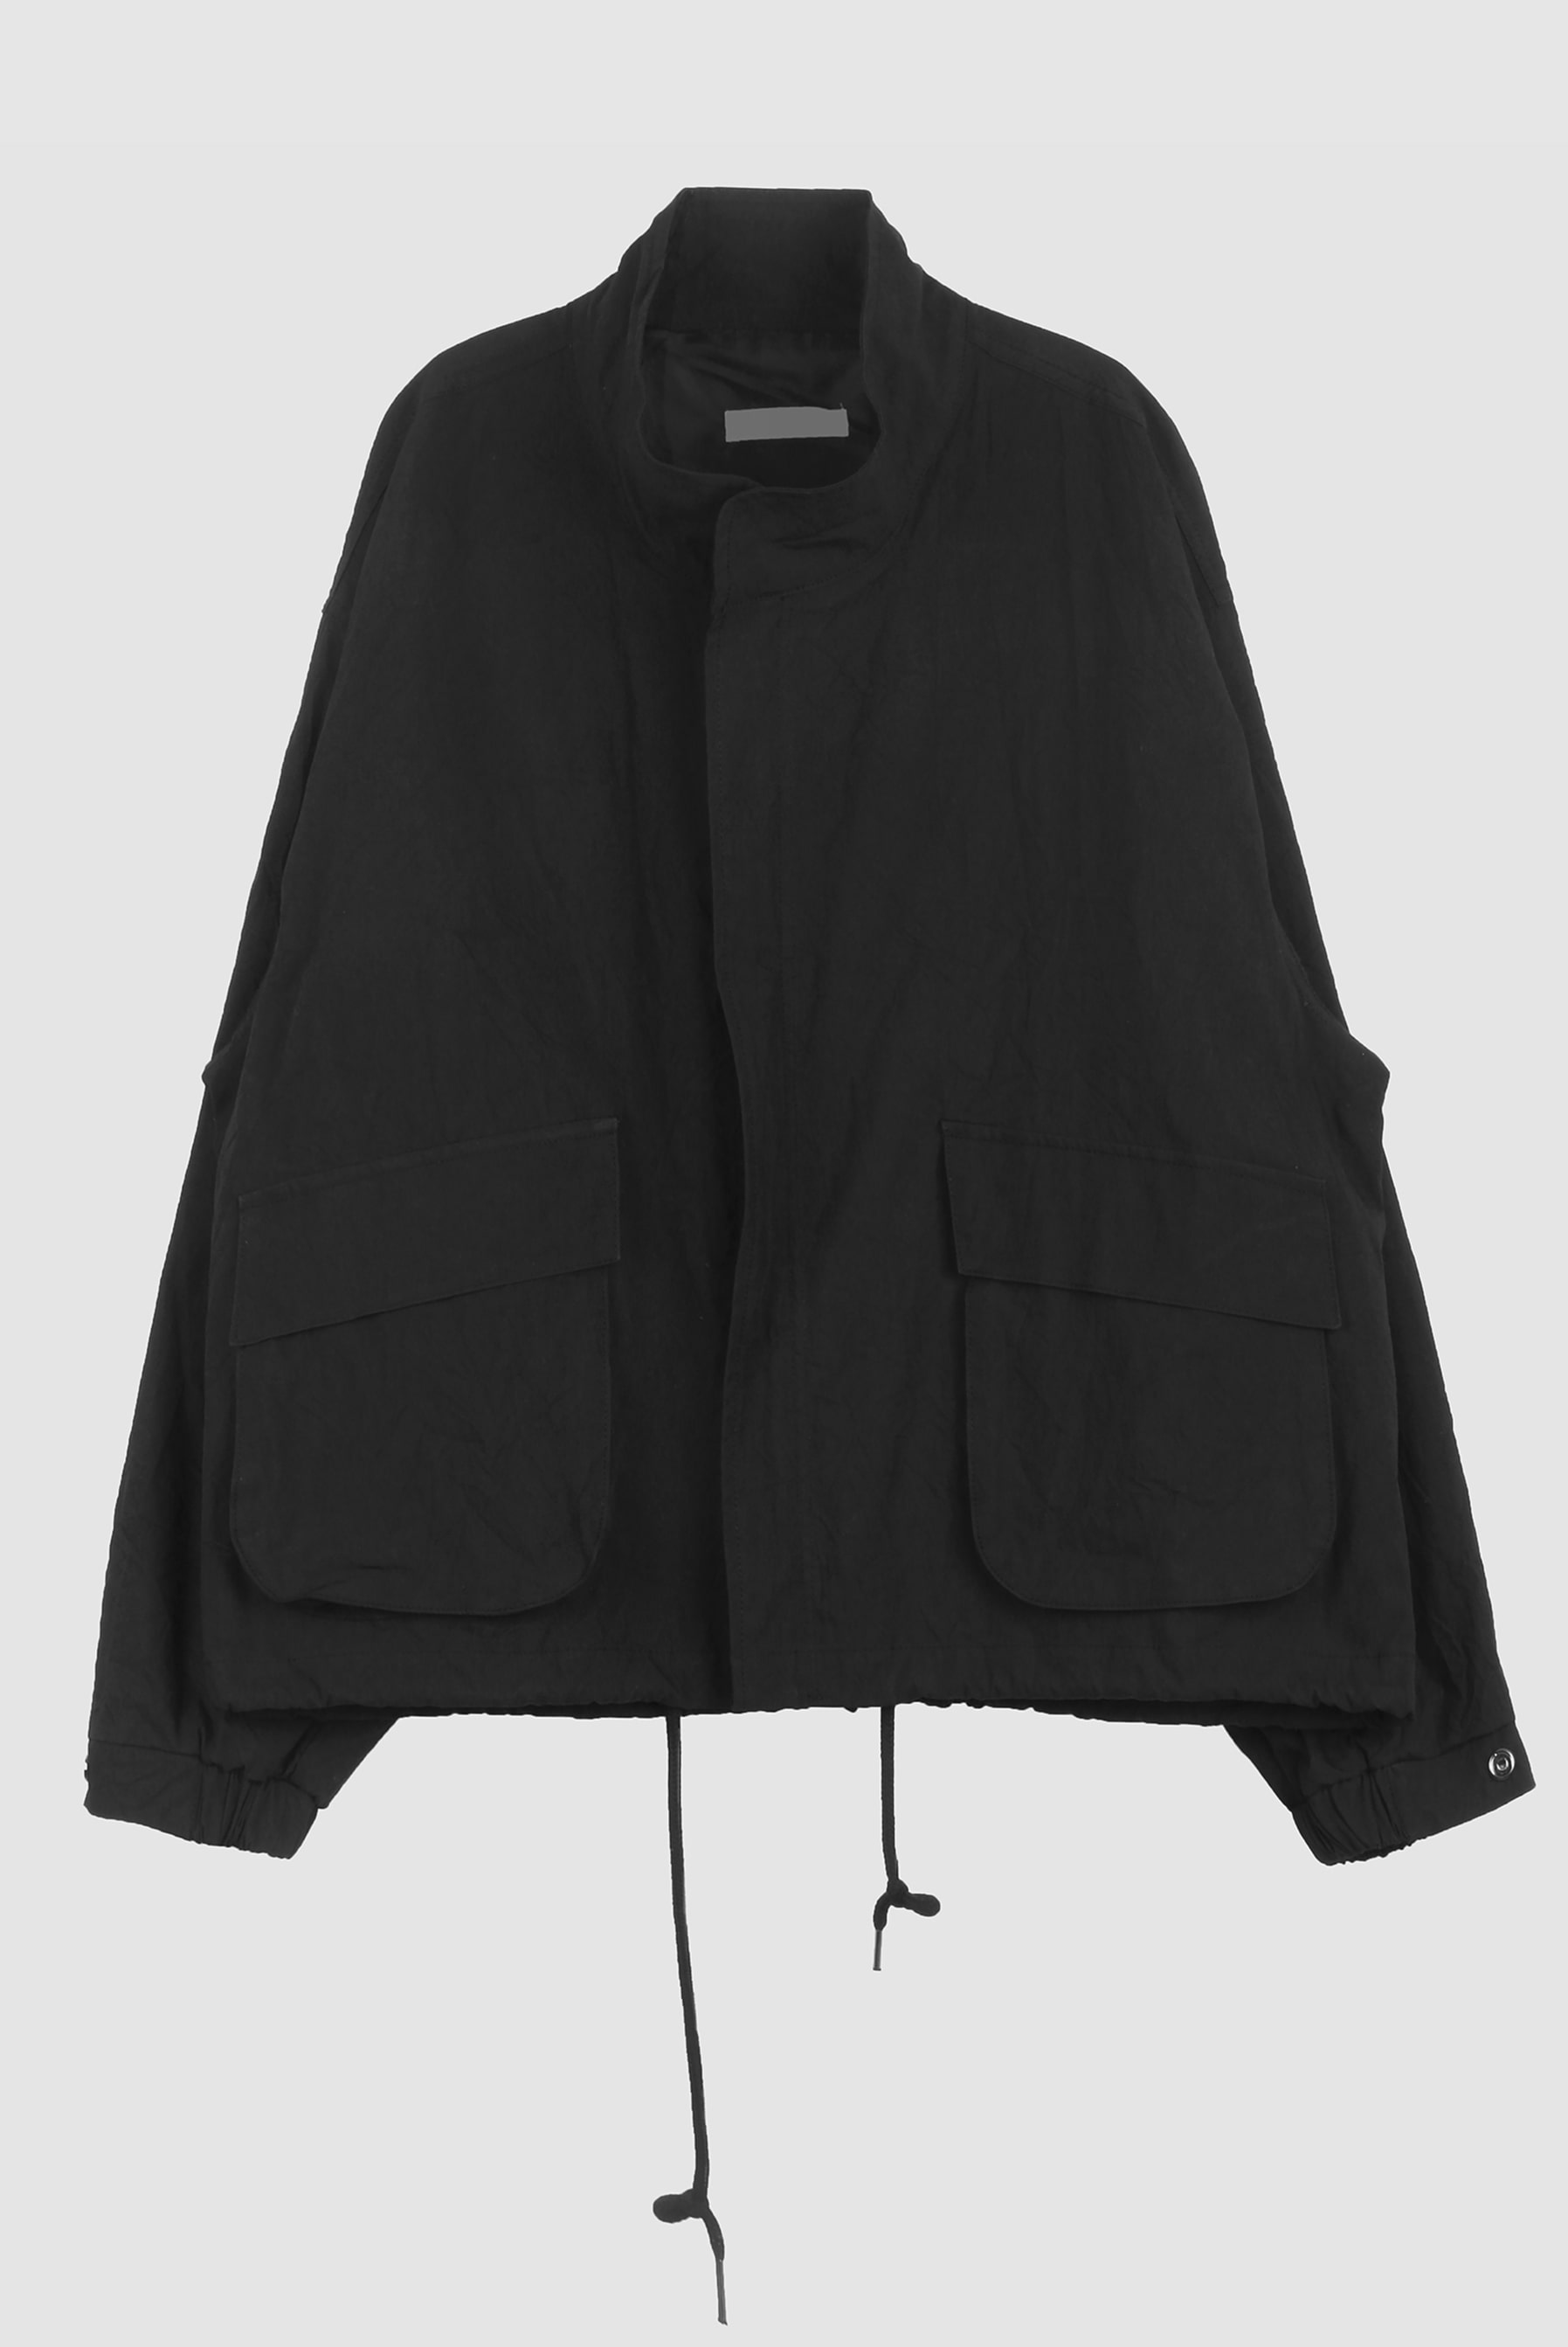 Wrinkle_Nylon Crop_Jacket